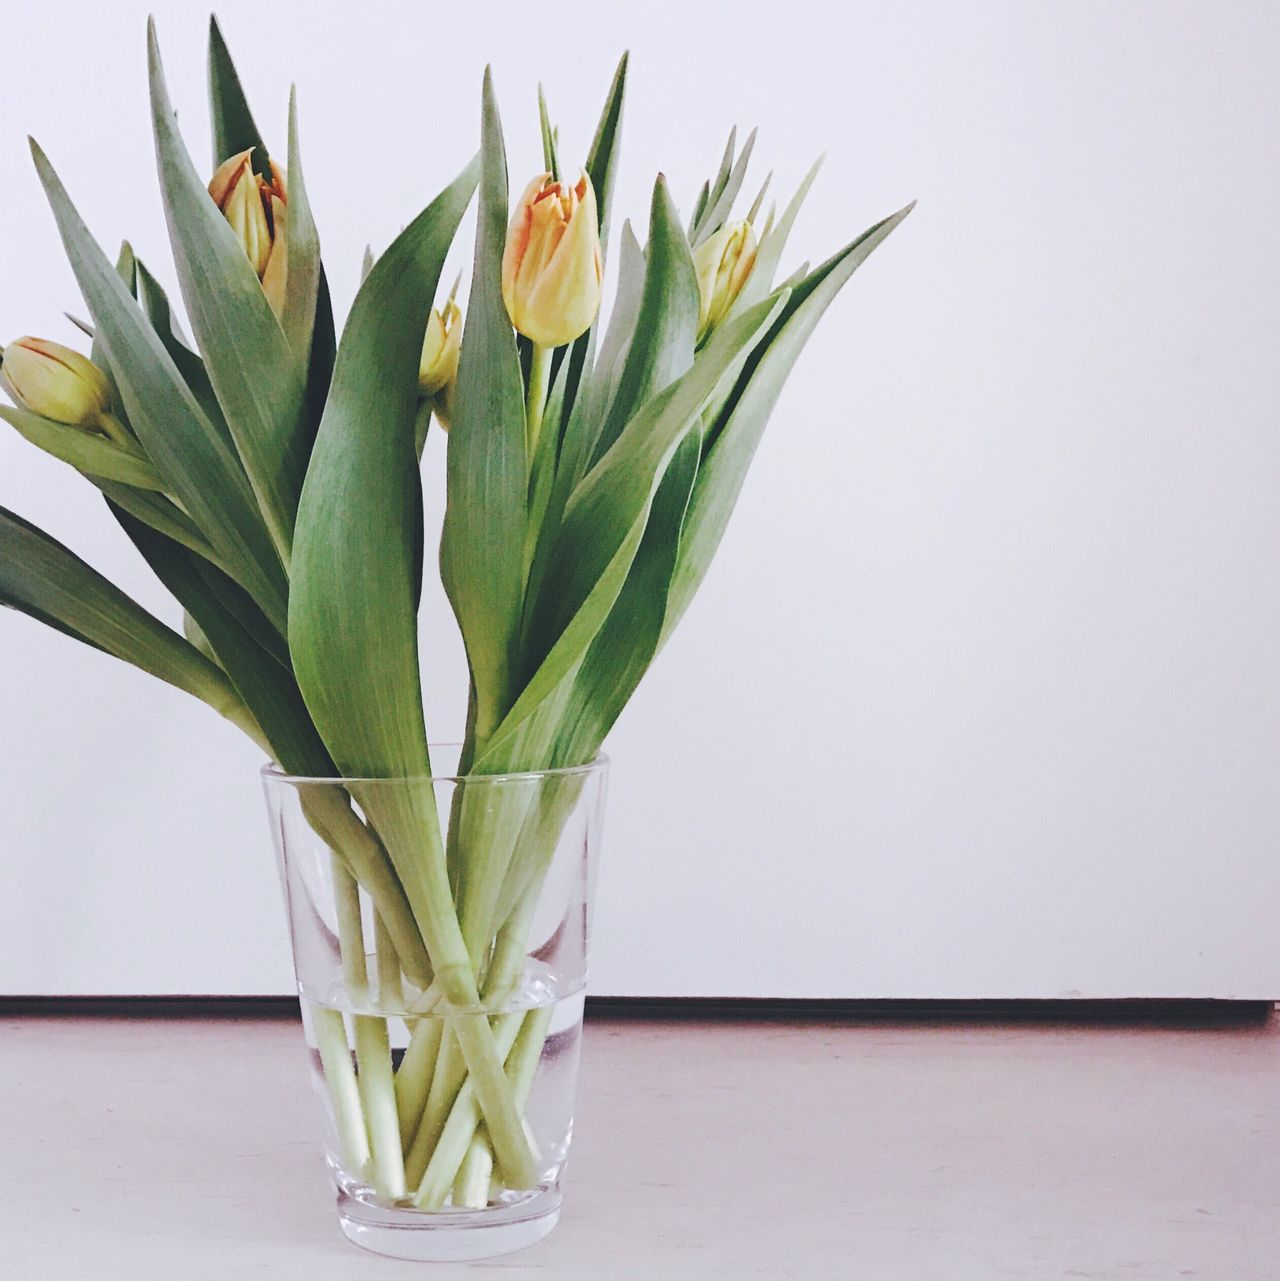 Spring is here 🌷 Still Life Tulips Vase Flower Flower Collection Growth Nature Plant Freshness White Background Flower Arrangement Interior Views Interior Style Beauty In Nature Copy Space Springtime Spring Flowers EyeEm Best Shots EyeEm Nature Lover